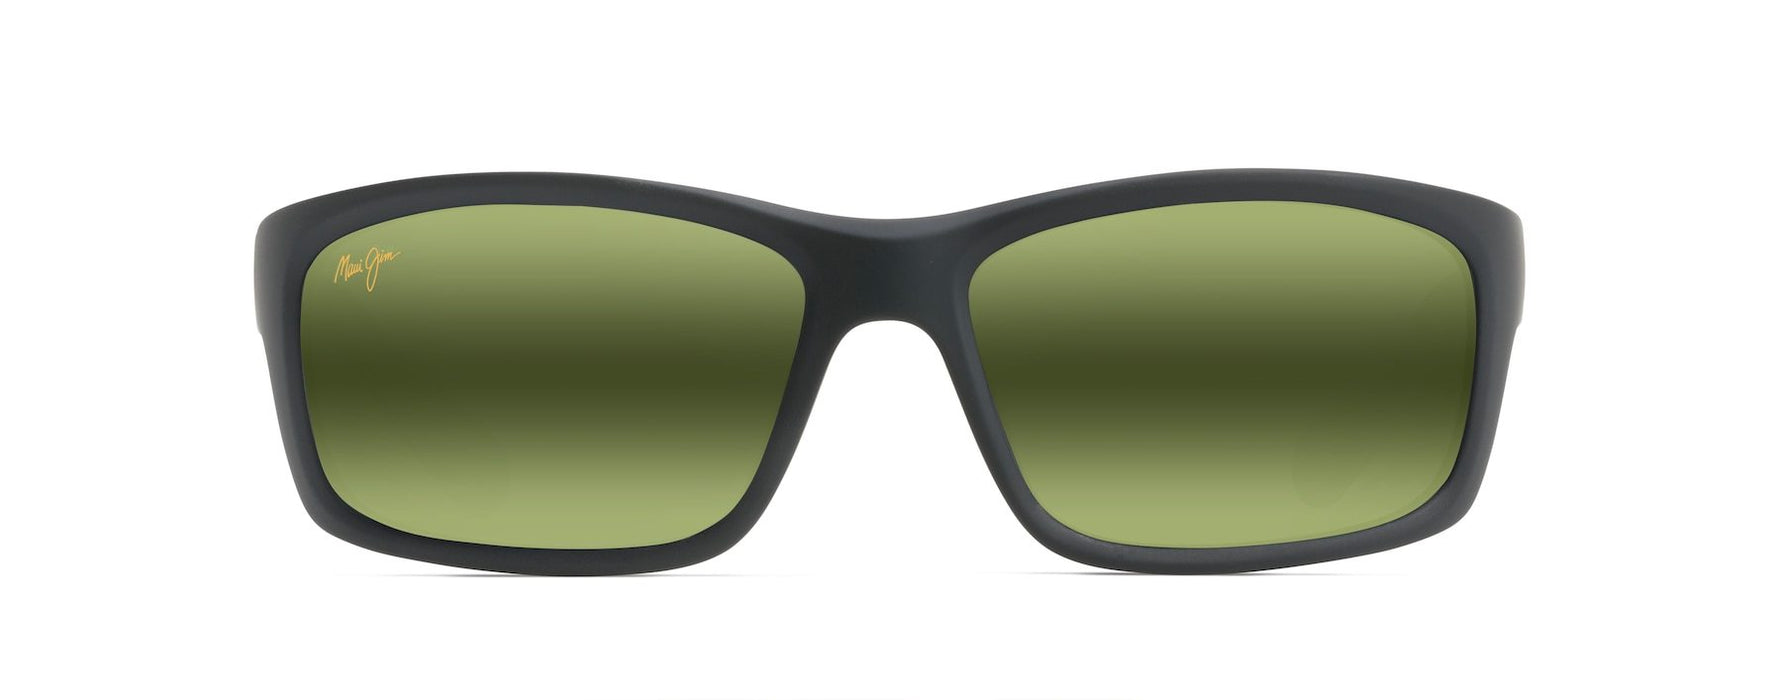 MyMaui Kanaio Coast MM766-003 Sunglasses